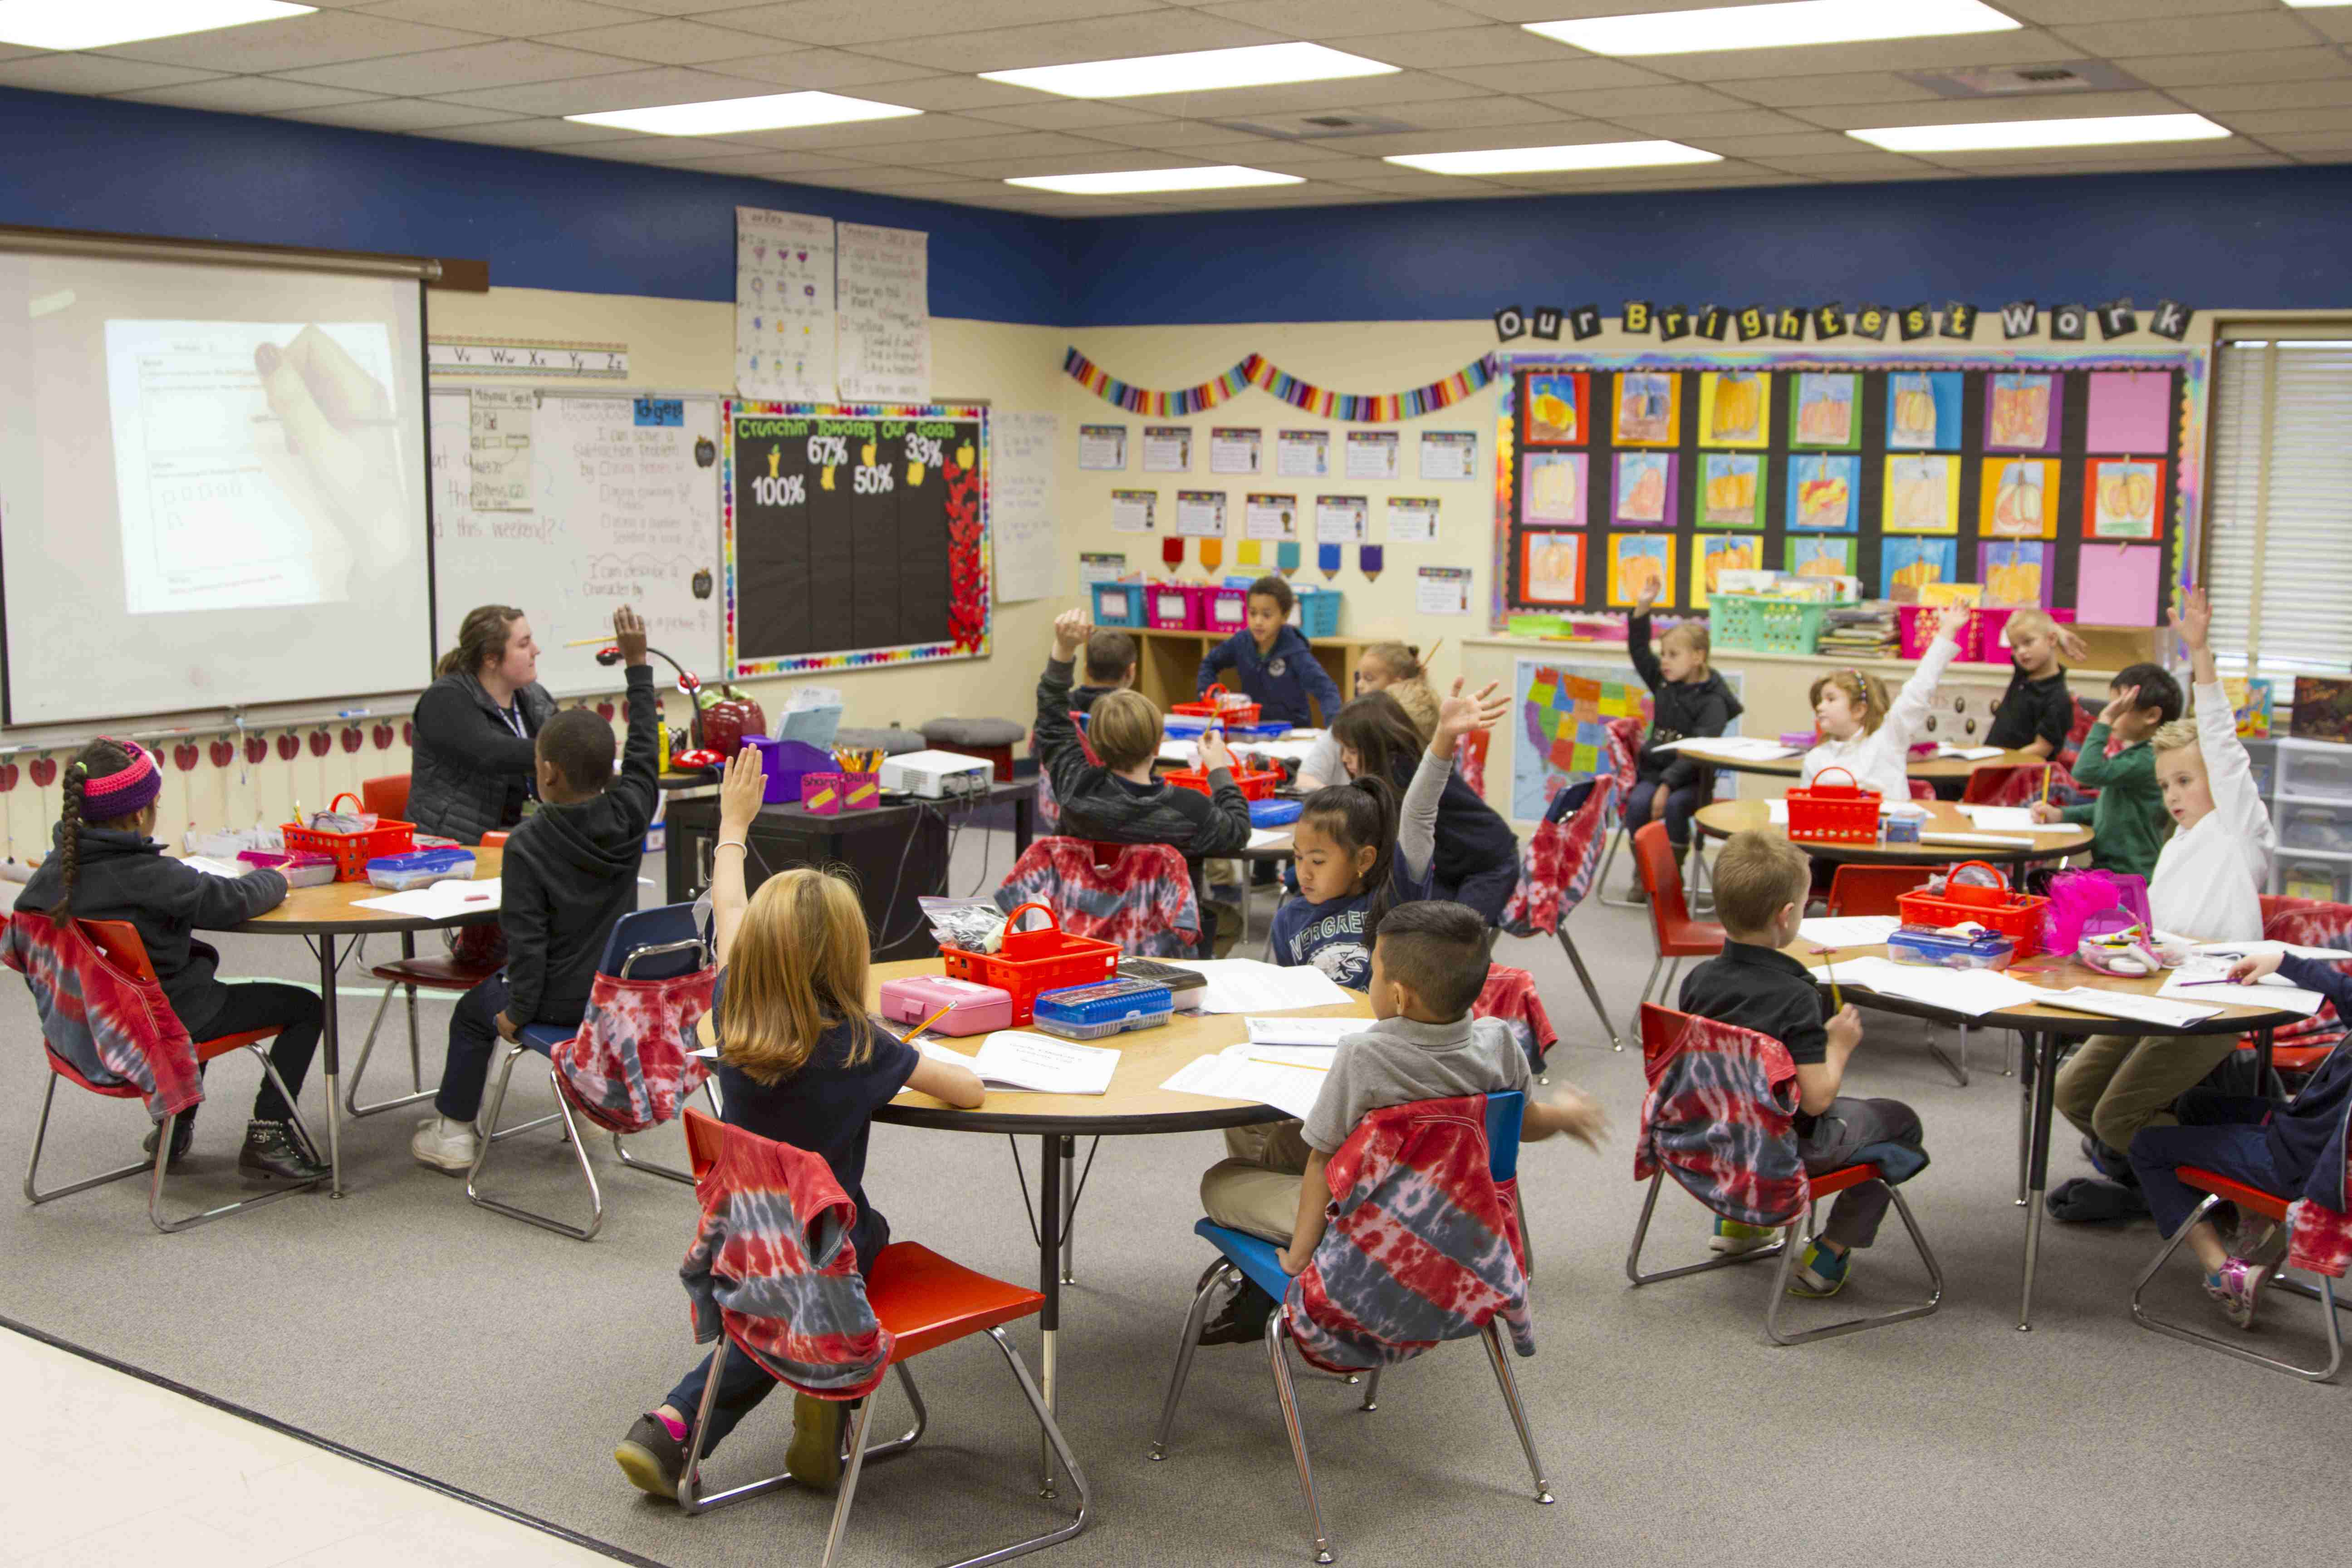 Students learning in First Grade at Evergreen Elementary